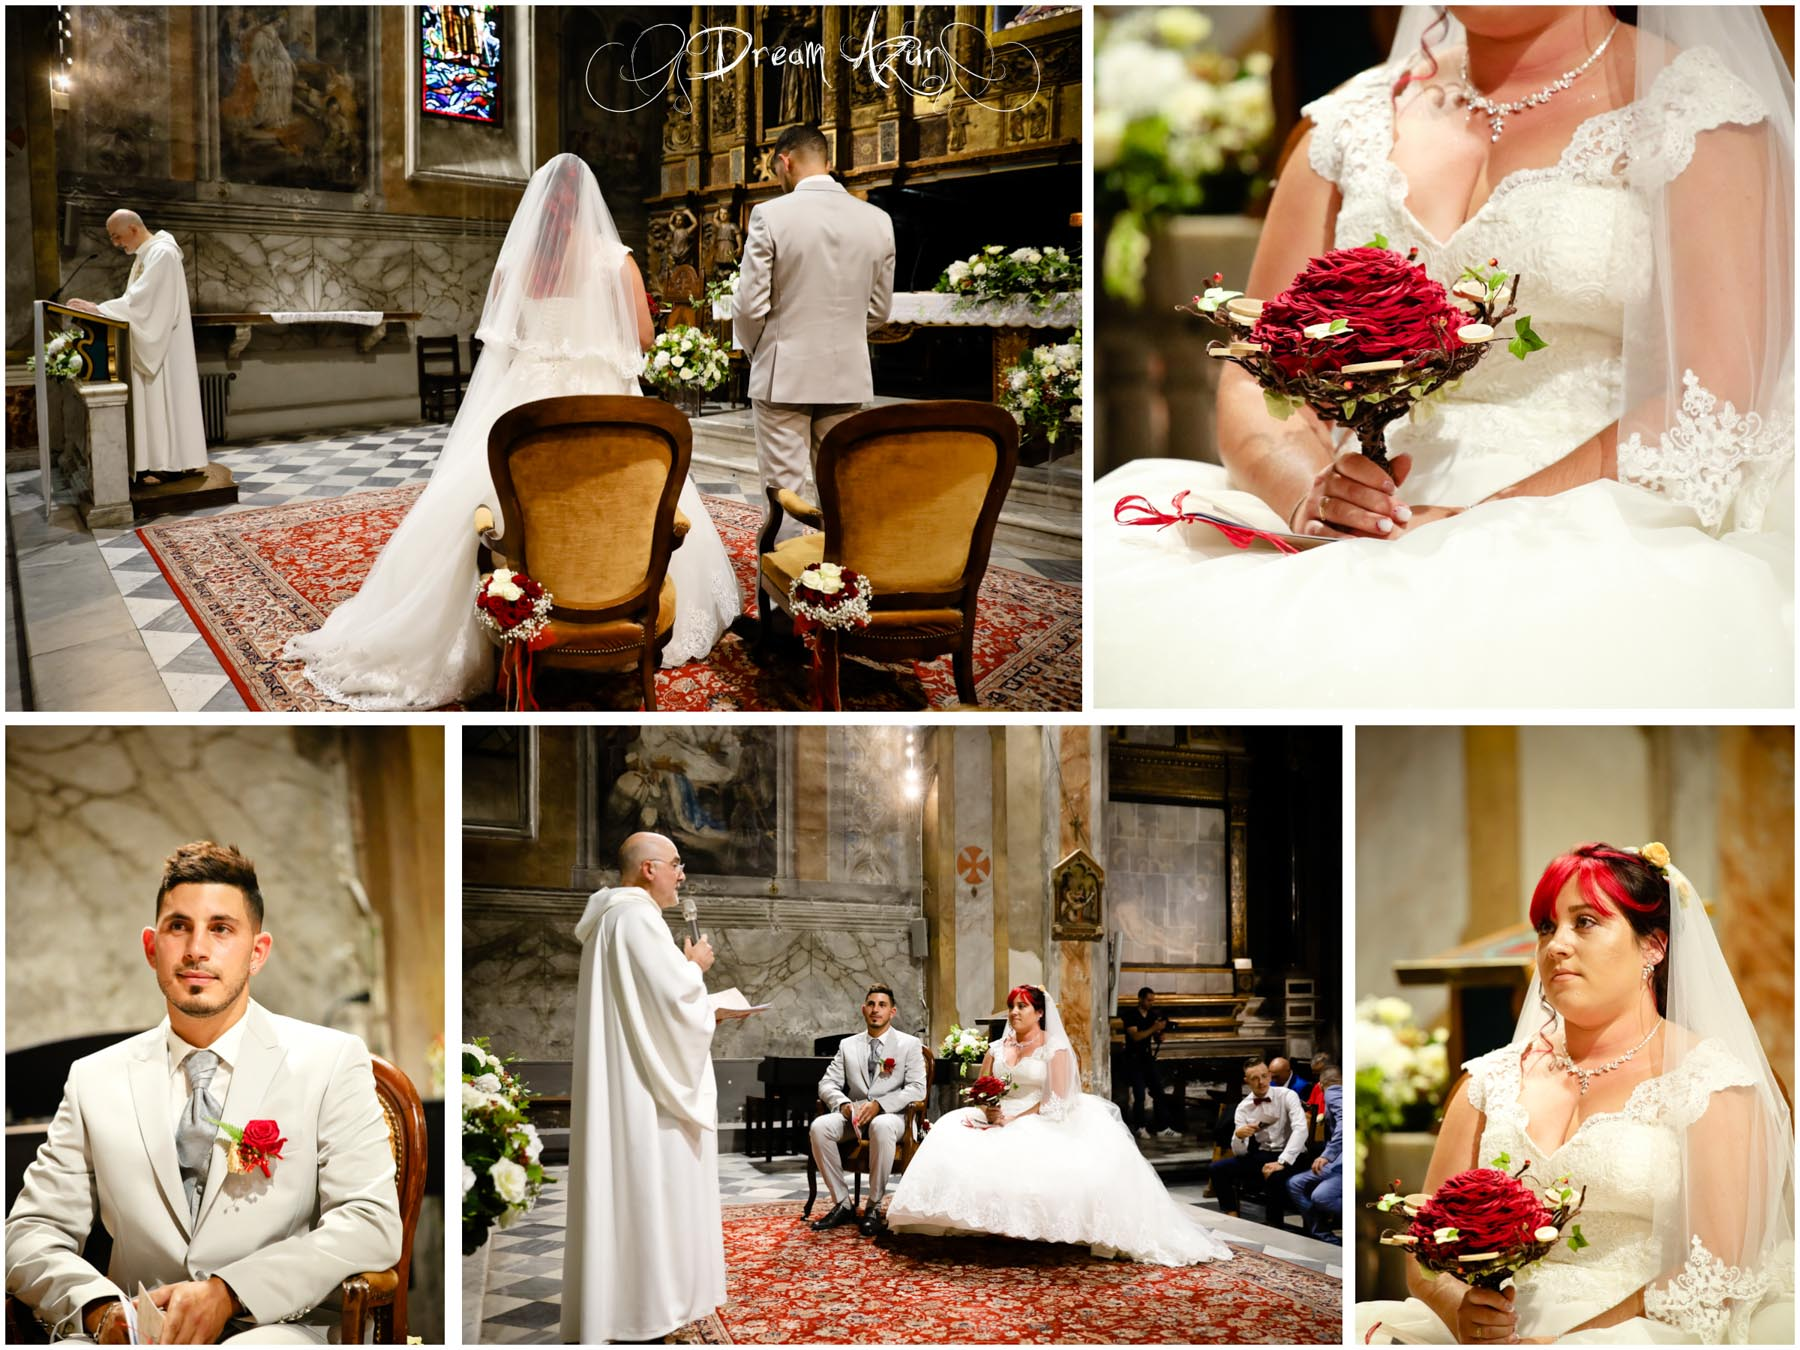 190824COMPO-Mariage-Cindy-et-Anthony-44